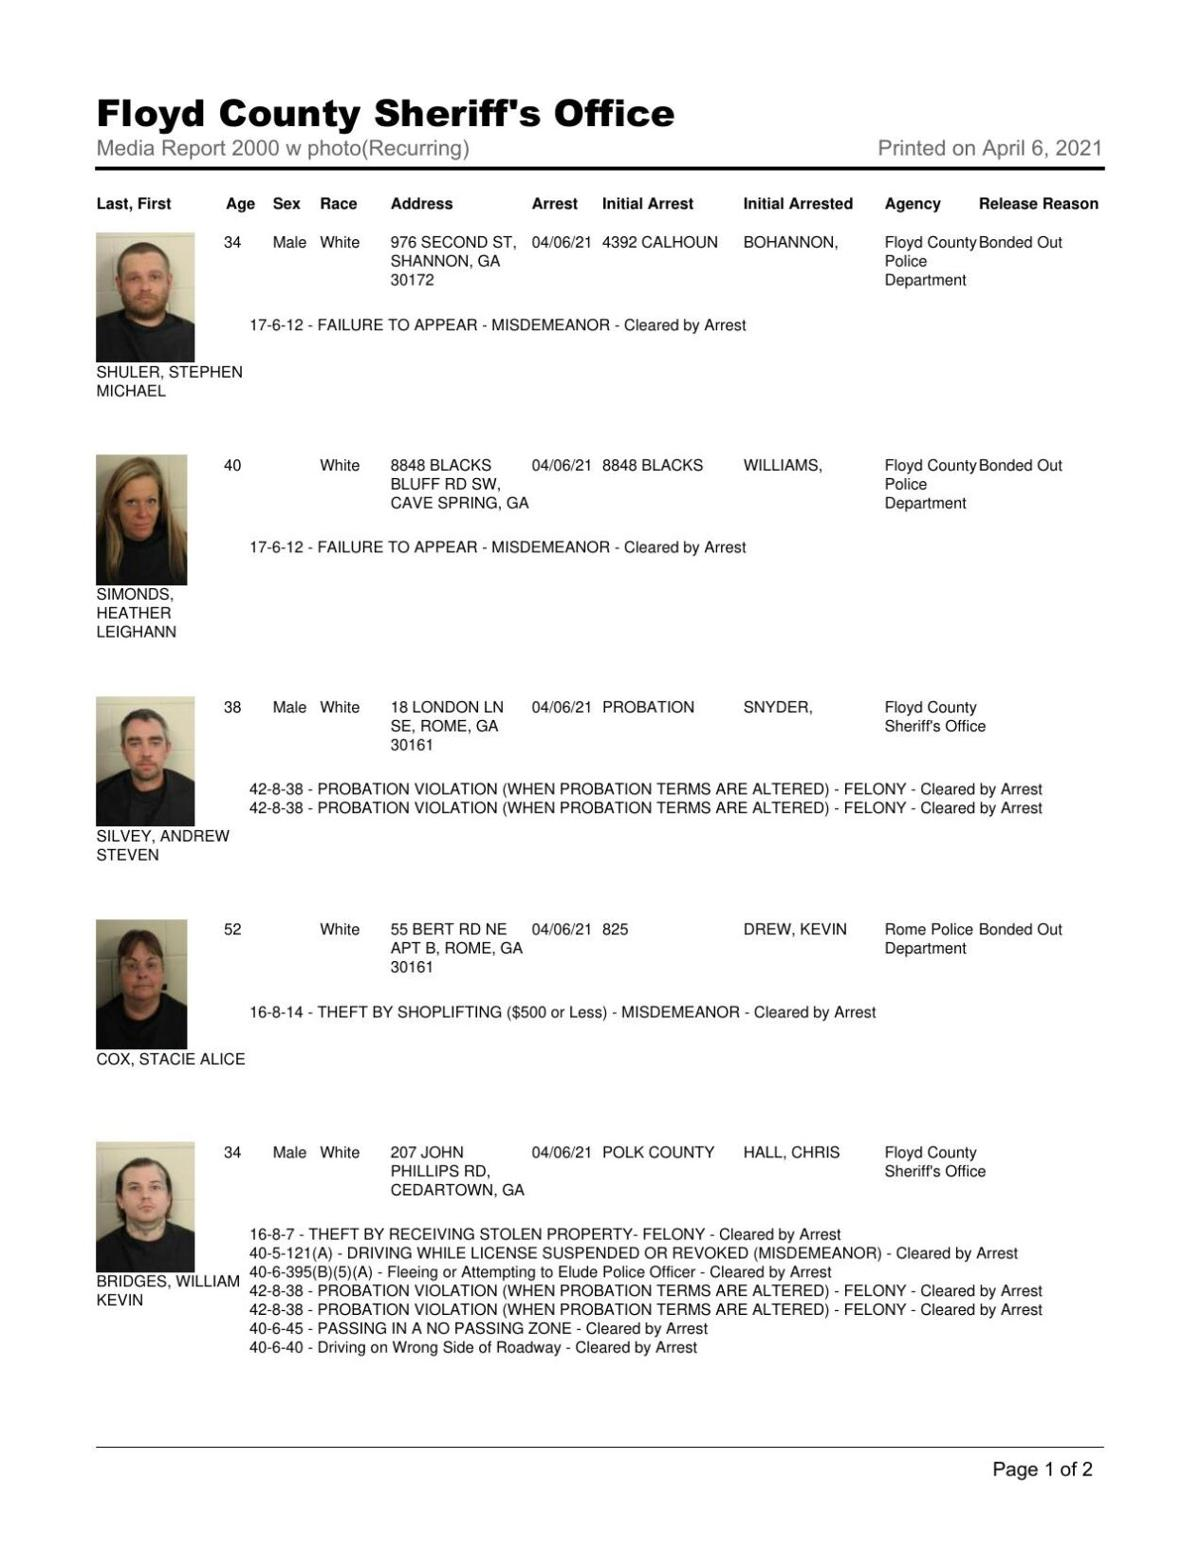 Floyd County Jail report for 8 pm Tuesday, April 6